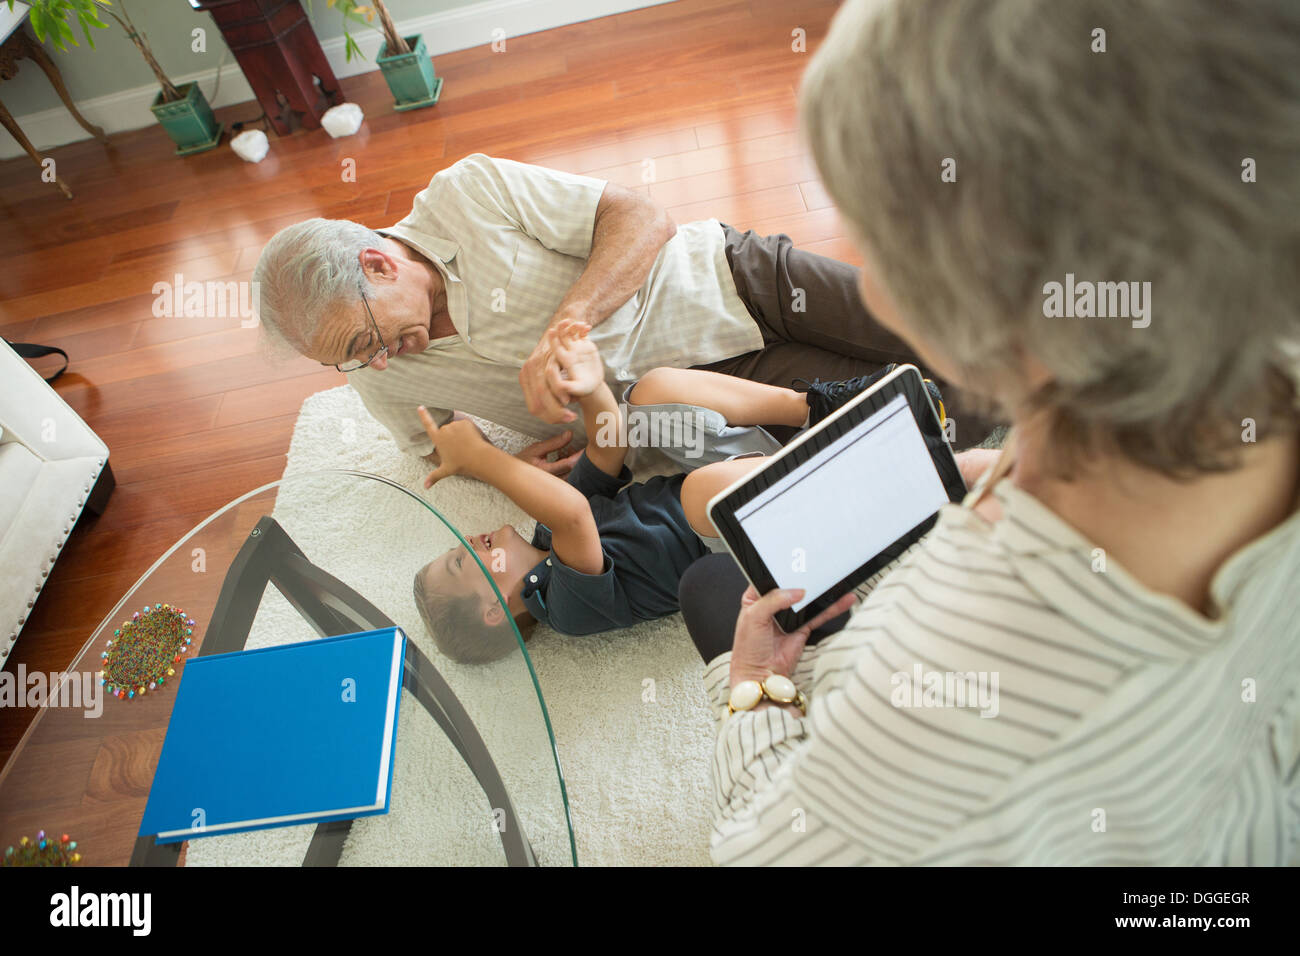 Petit-fils de chatouillement Senior man on rug Photo Stock